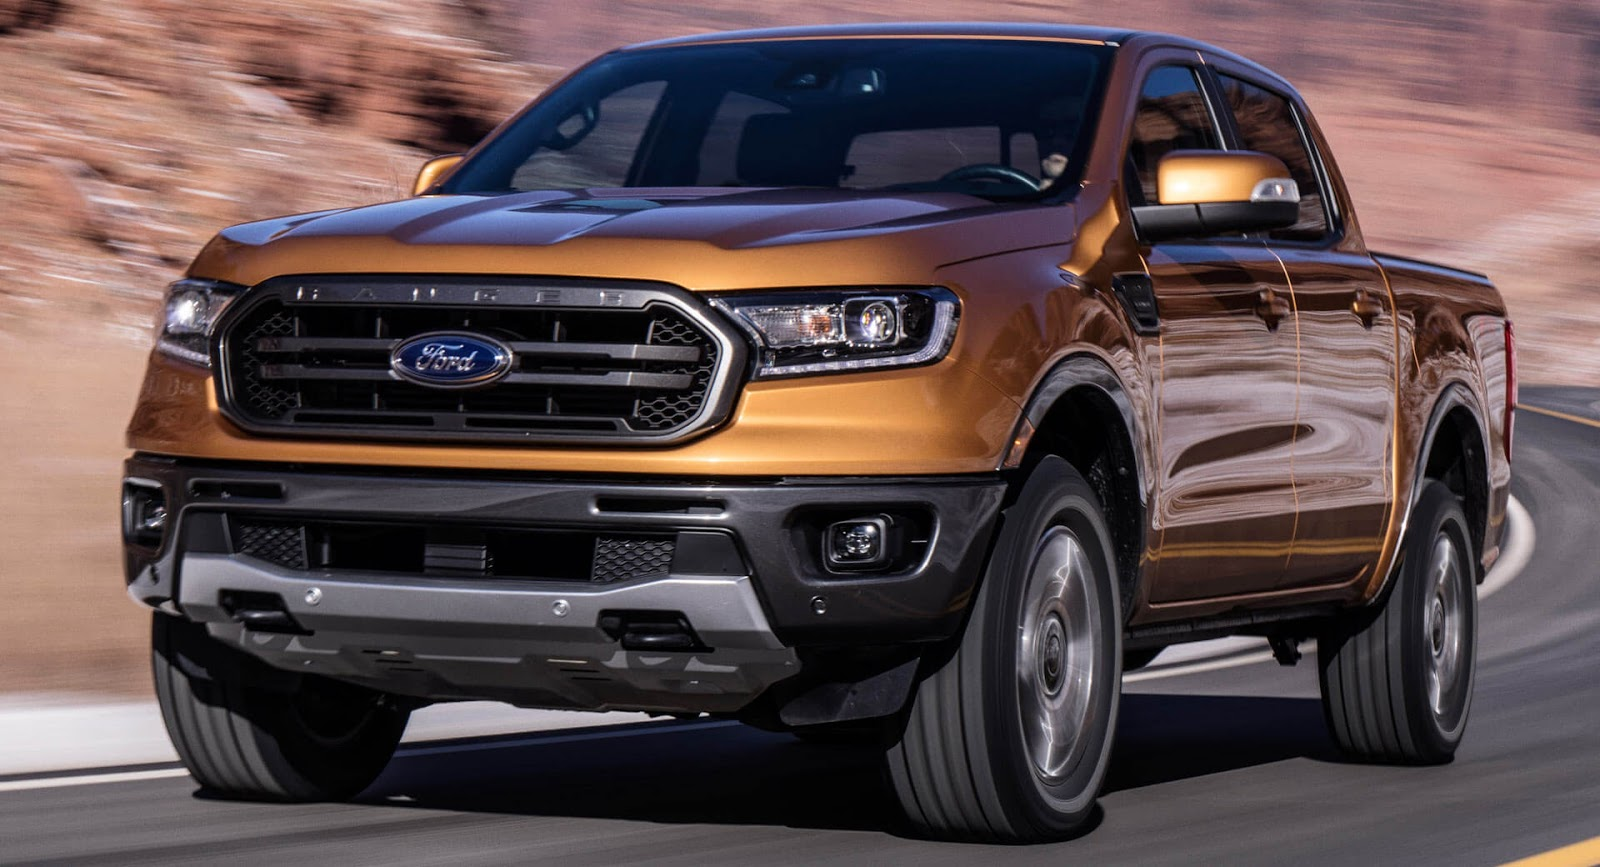 Spec 2019 Ford Ranger unveiled, gets 2.3T with 10-spd auto